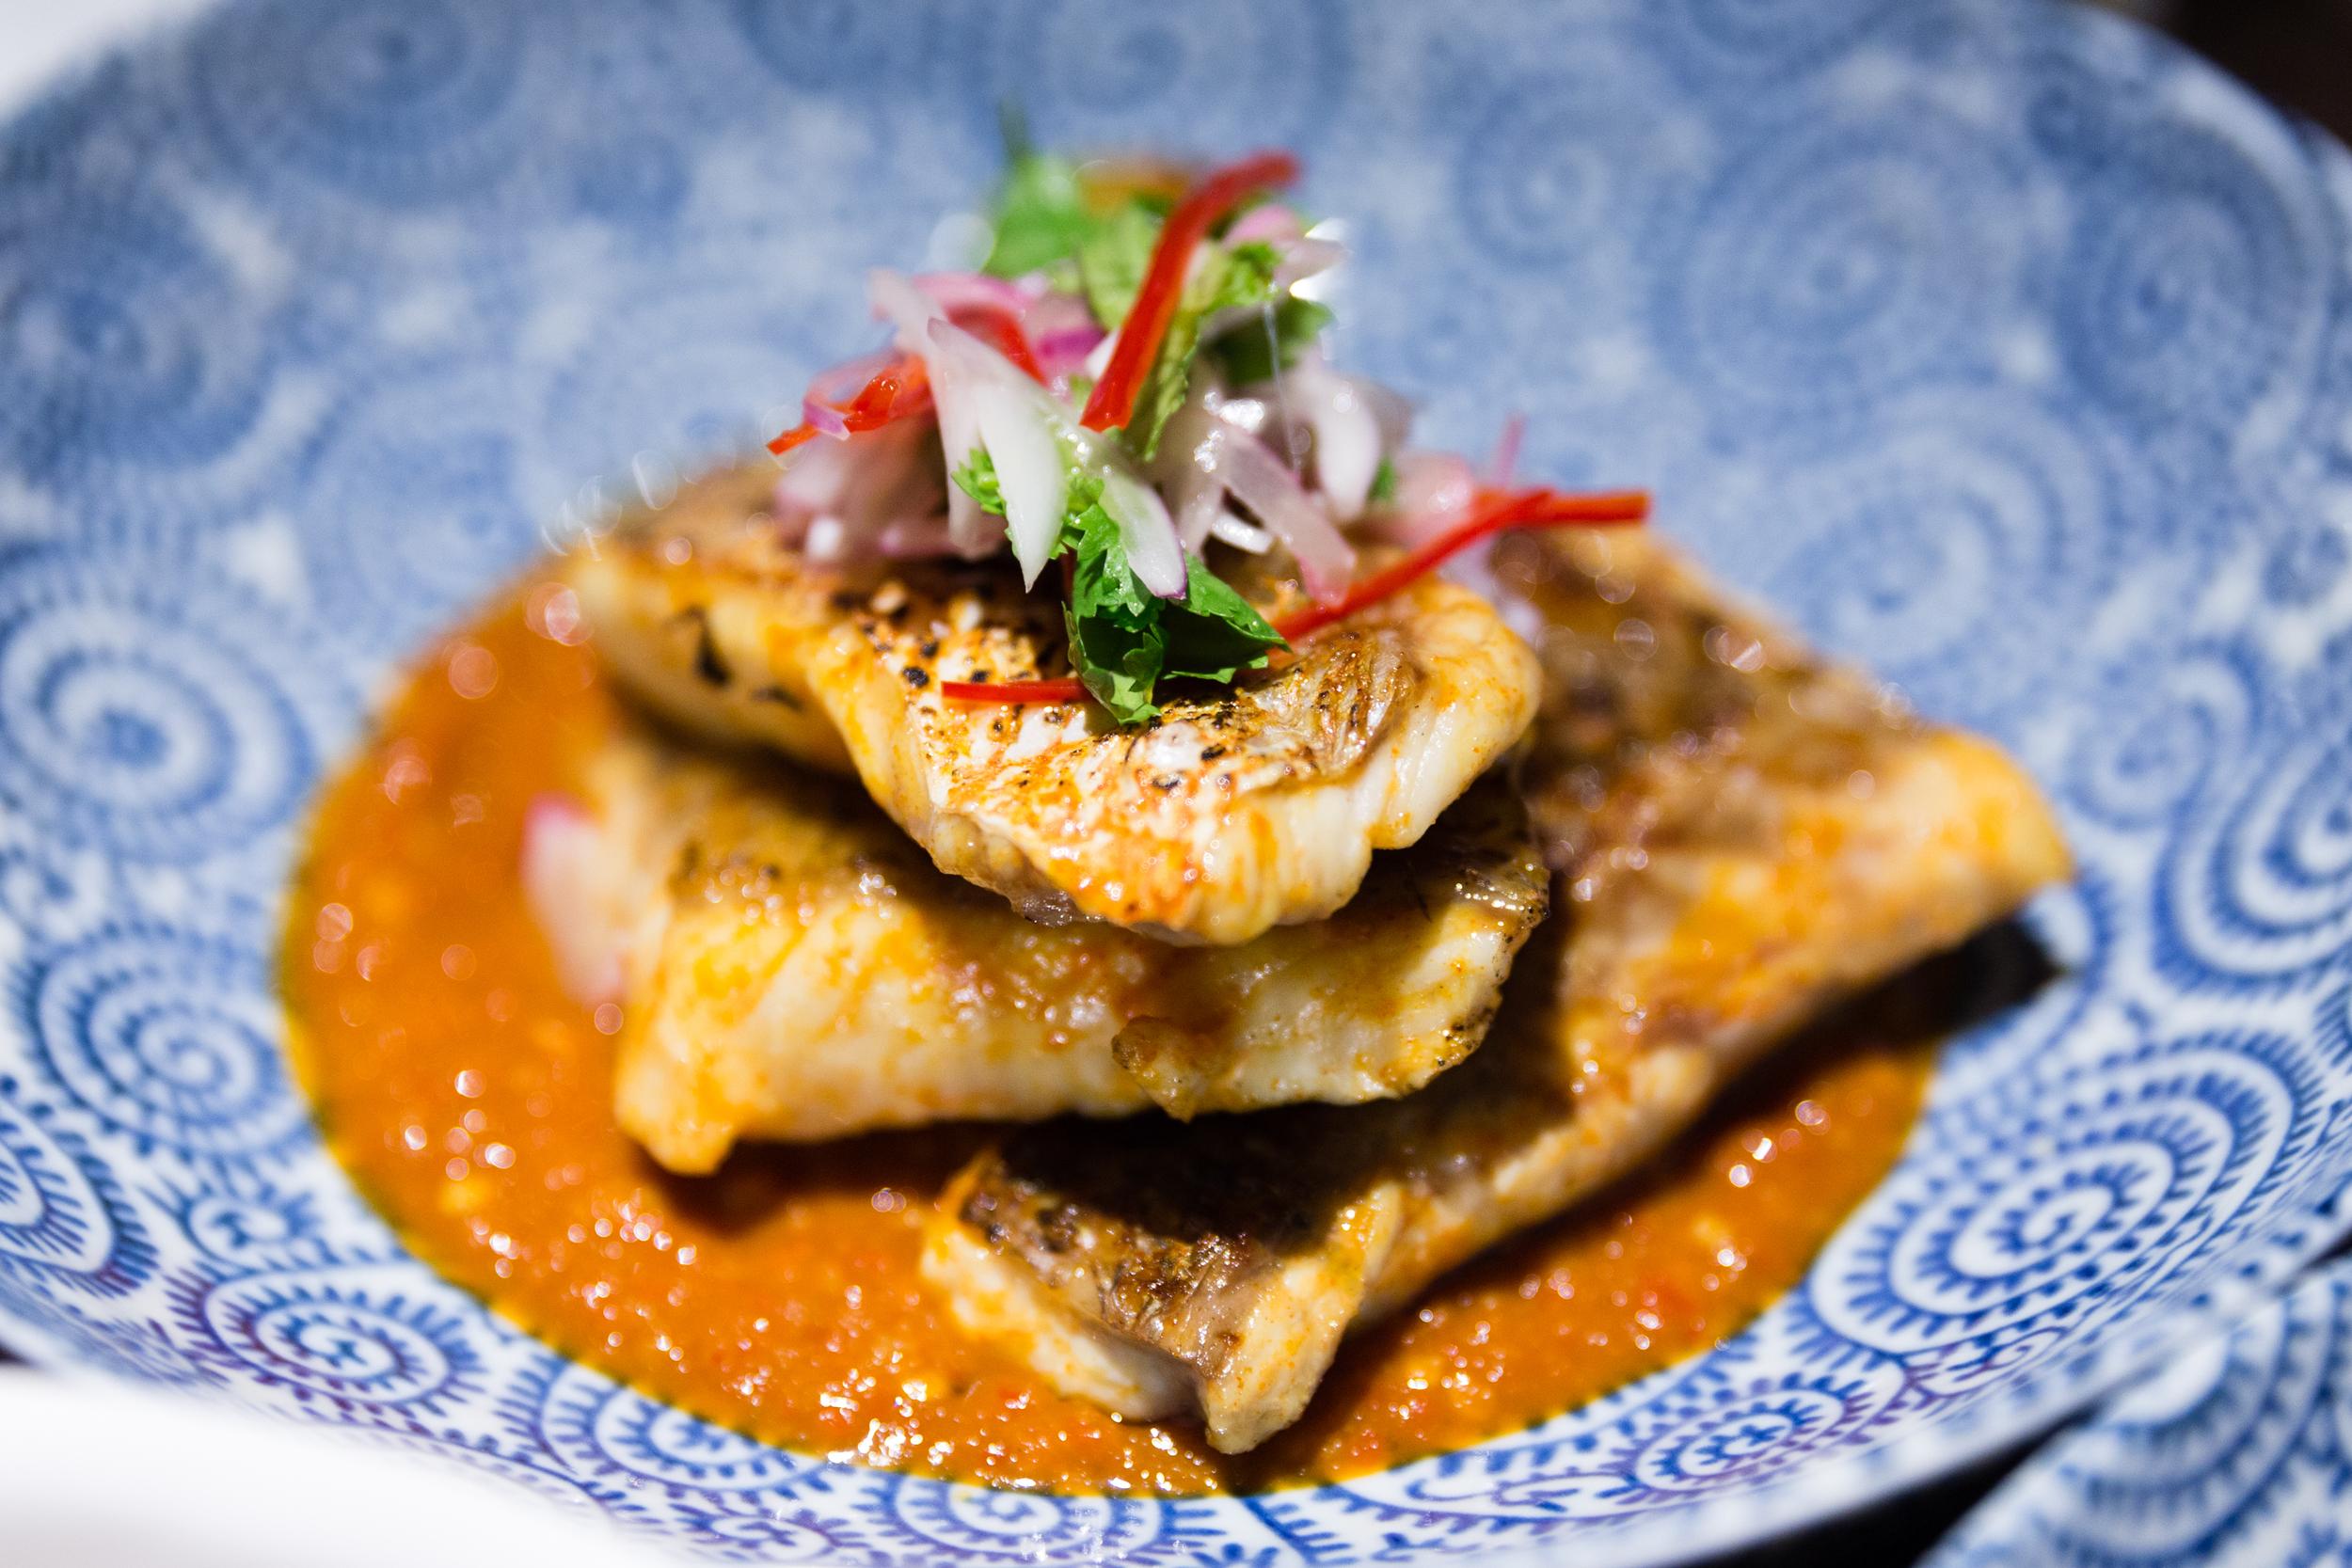 Coconut Charcoal Grilled Re  d Lion Snapper Fillet, Dried Shrimp Sambal, Red Onion Relish